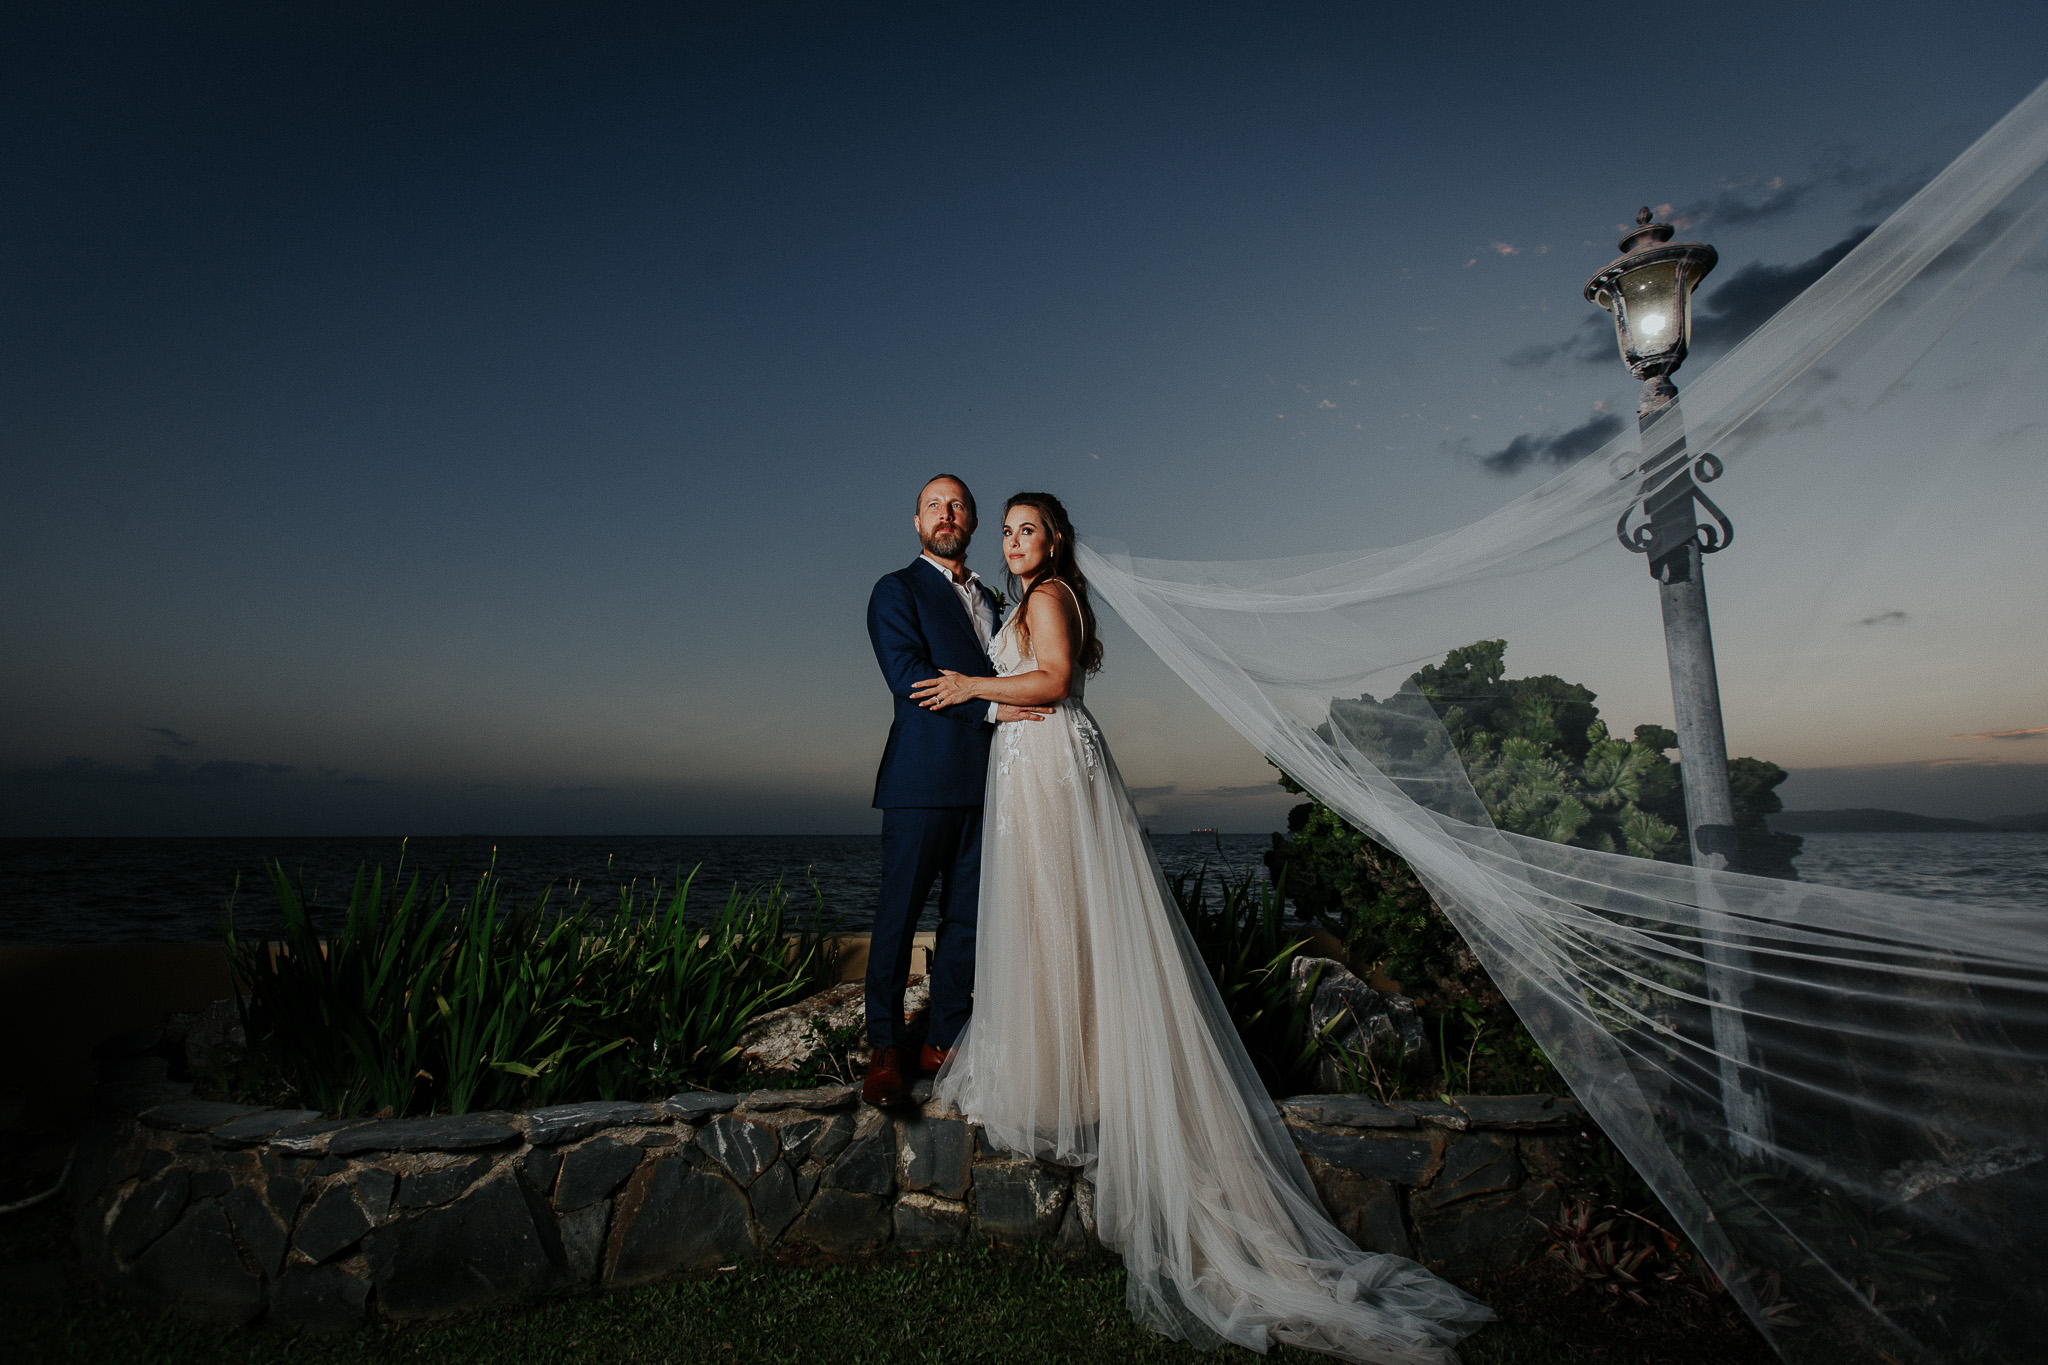 Kristin + Paul wedding in Trinidad and Tobago